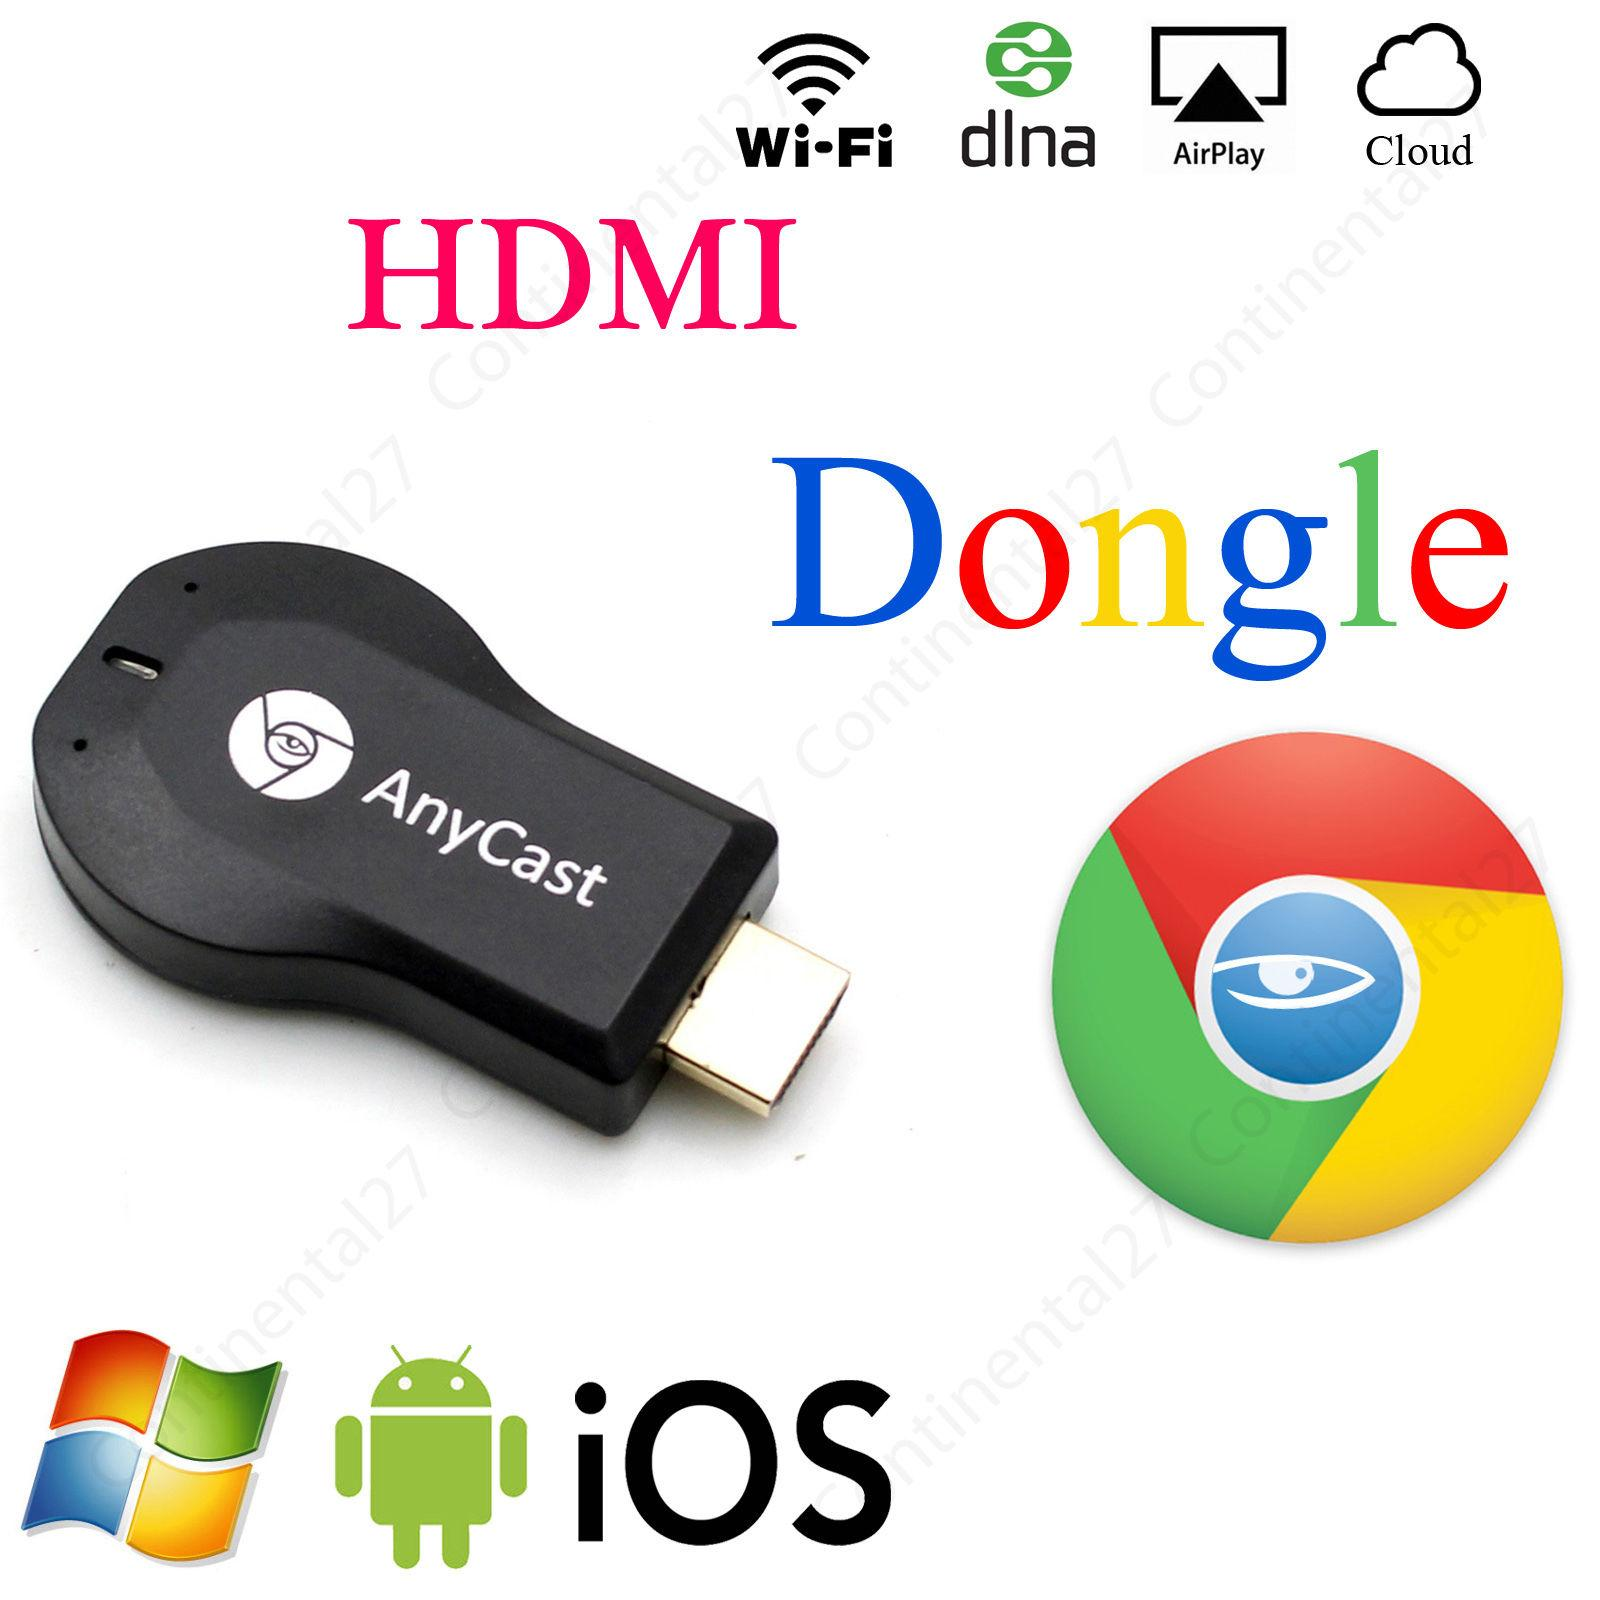 Latest Hdmi 1080p Anycast Ezcast Ez Cast Wifi Dongle For